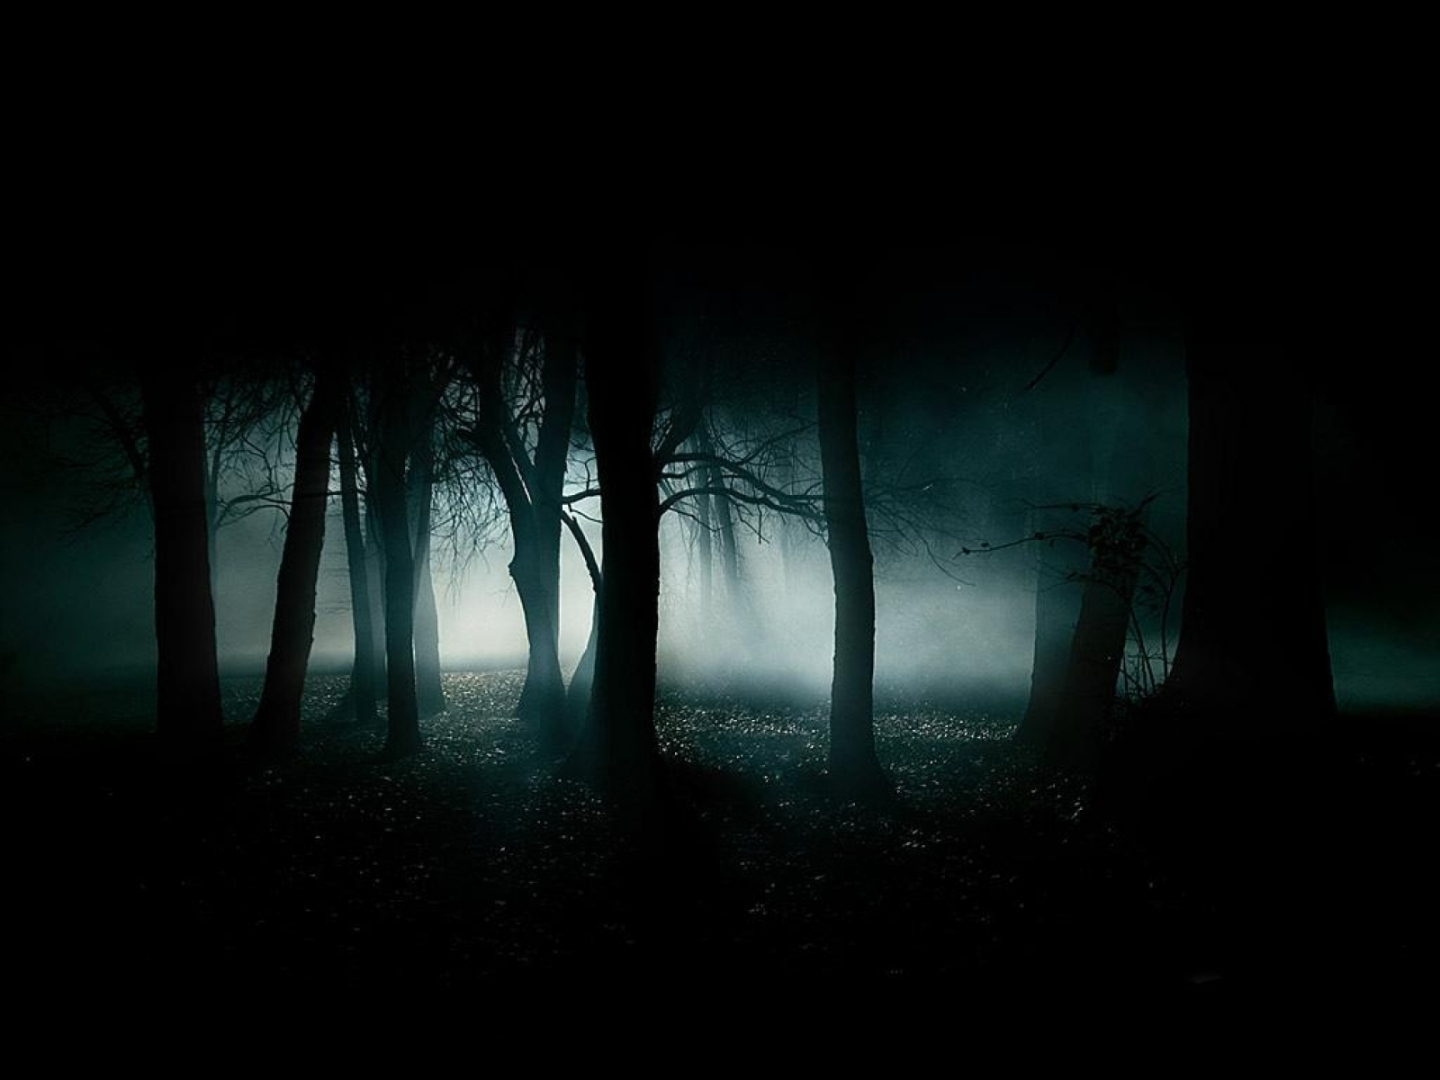 Spooky Forest by Night photo by Cynthia Myers - All Rights Reserved - used to give visual reference to free sci-fi dark fantasy story Fast Love Die by David J Rodger